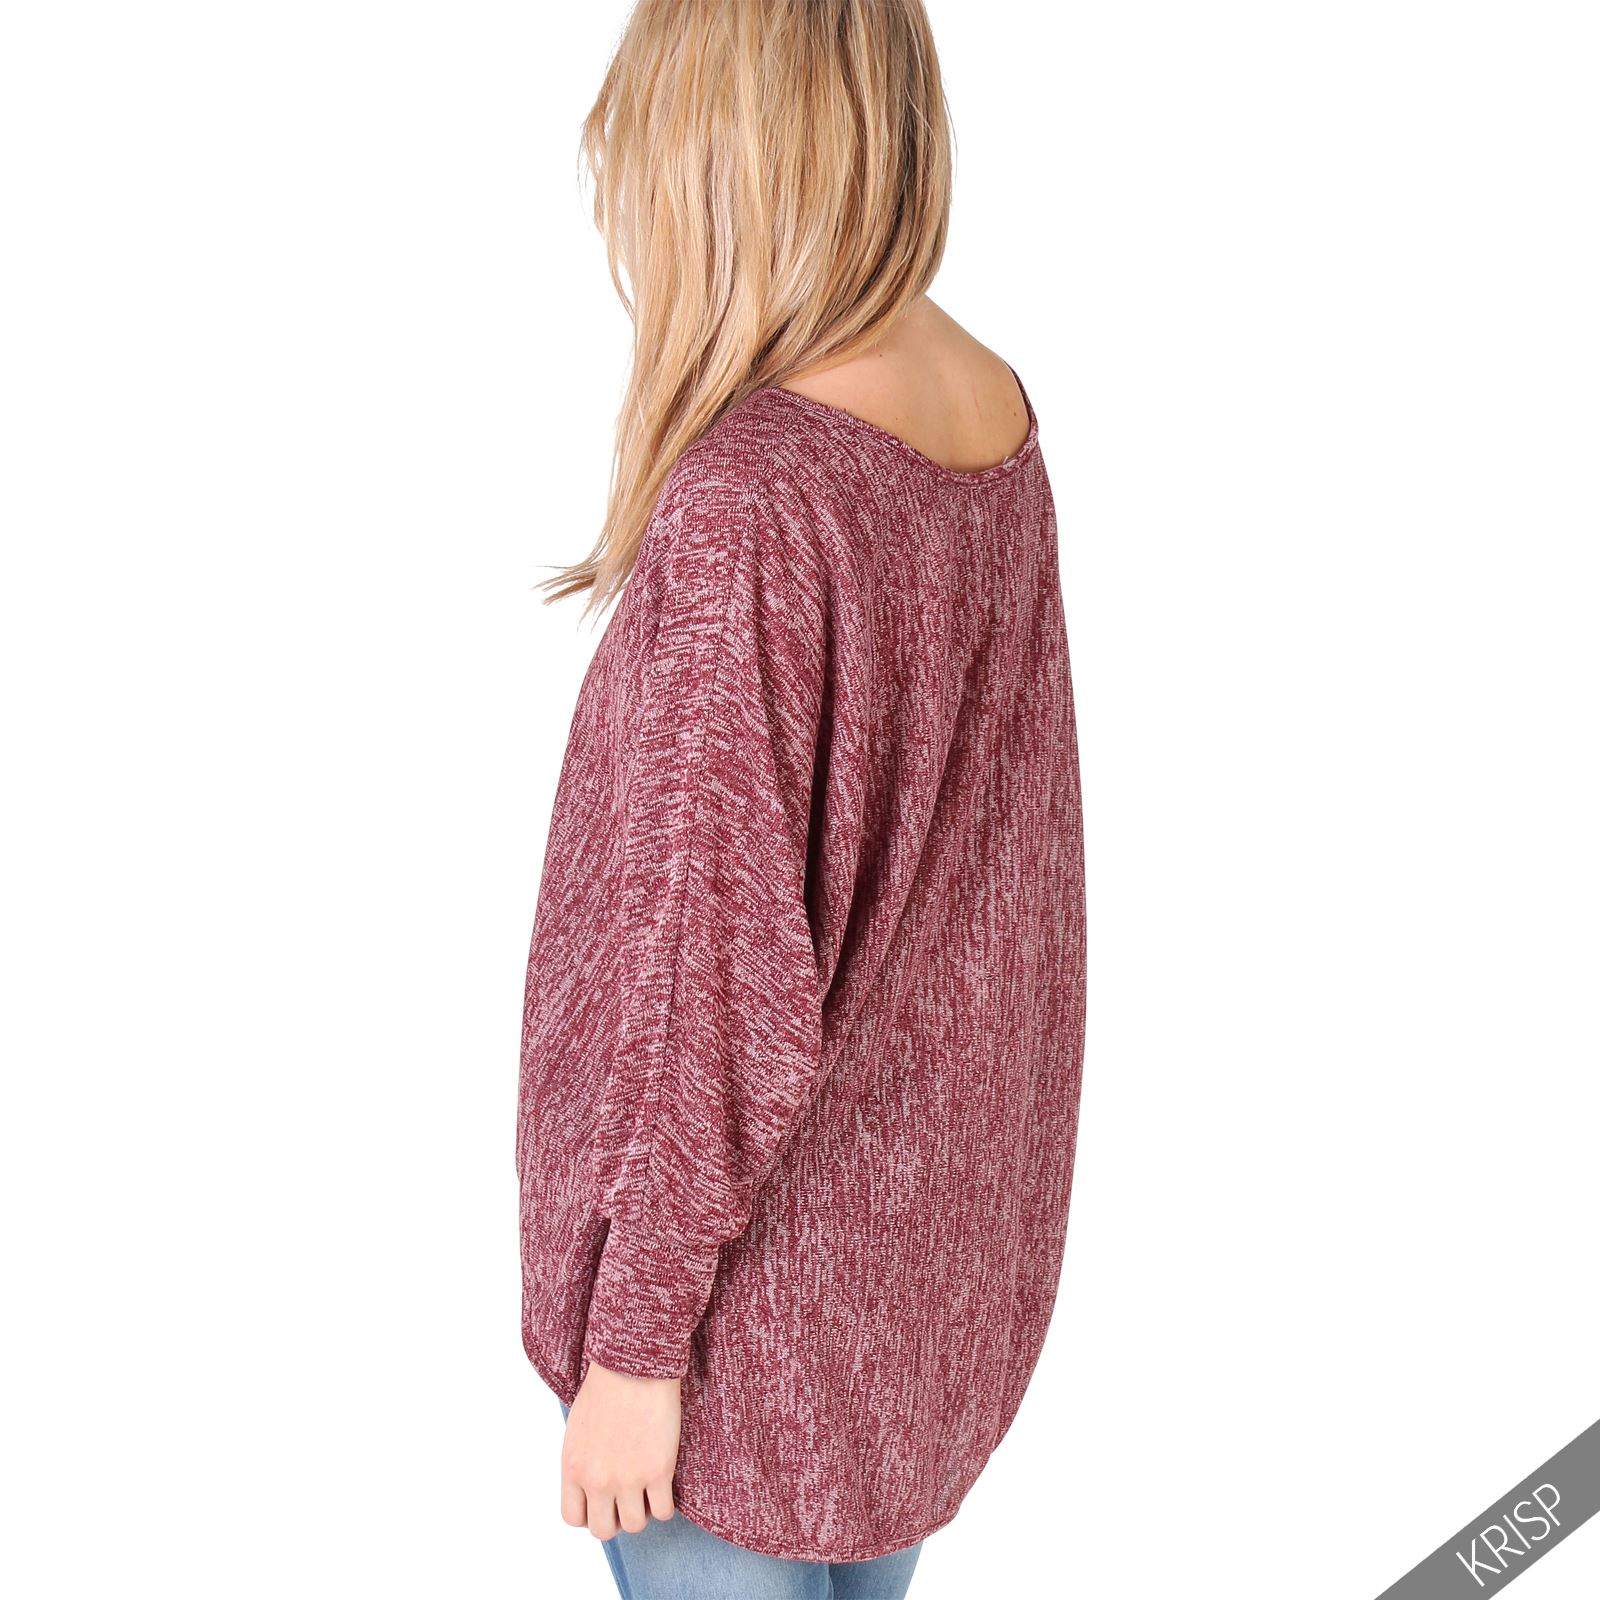 Showing 97 tunic sweatshirts women Athleisure wear is here to stay, and many women enjoy the amazing comfort, soft breathable fabrics, and clothing that lets one move about during their active day. The sweatshirt tunic is a fine example of relaxed fashion and .